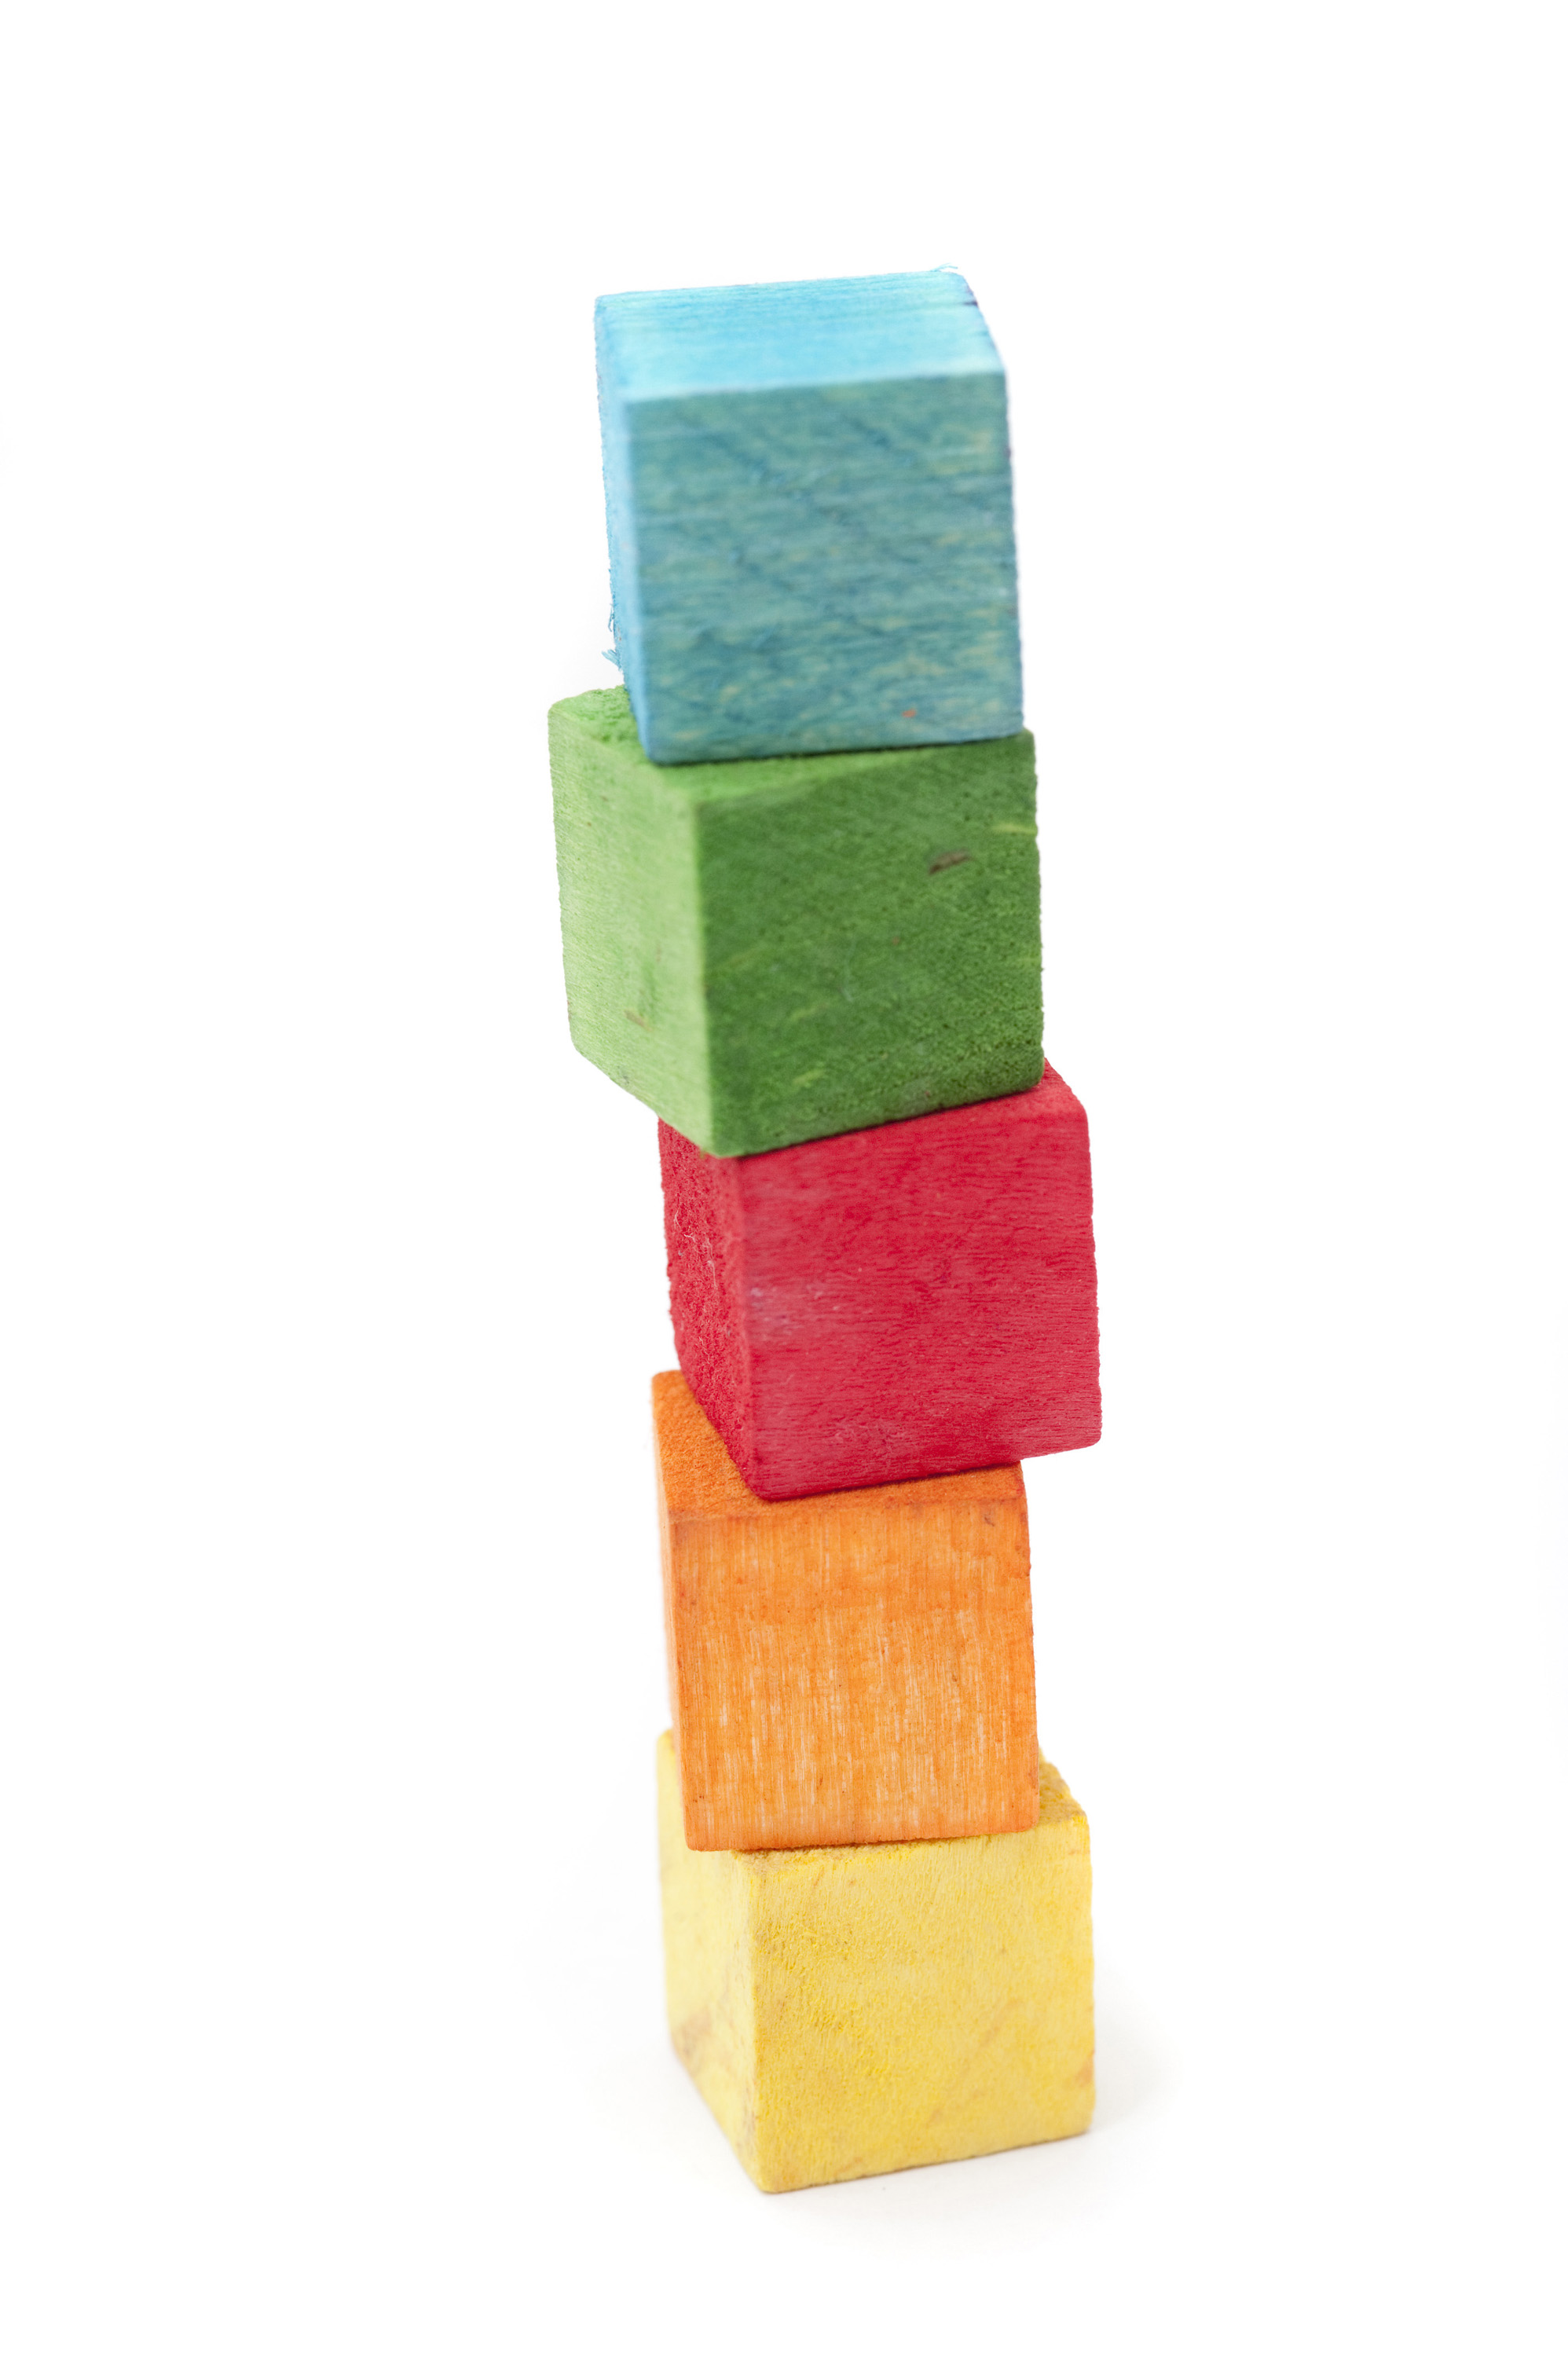 Tower of blocks clipart vector freeuse stock Free image of A tower of wooden building blocks vector freeuse stock